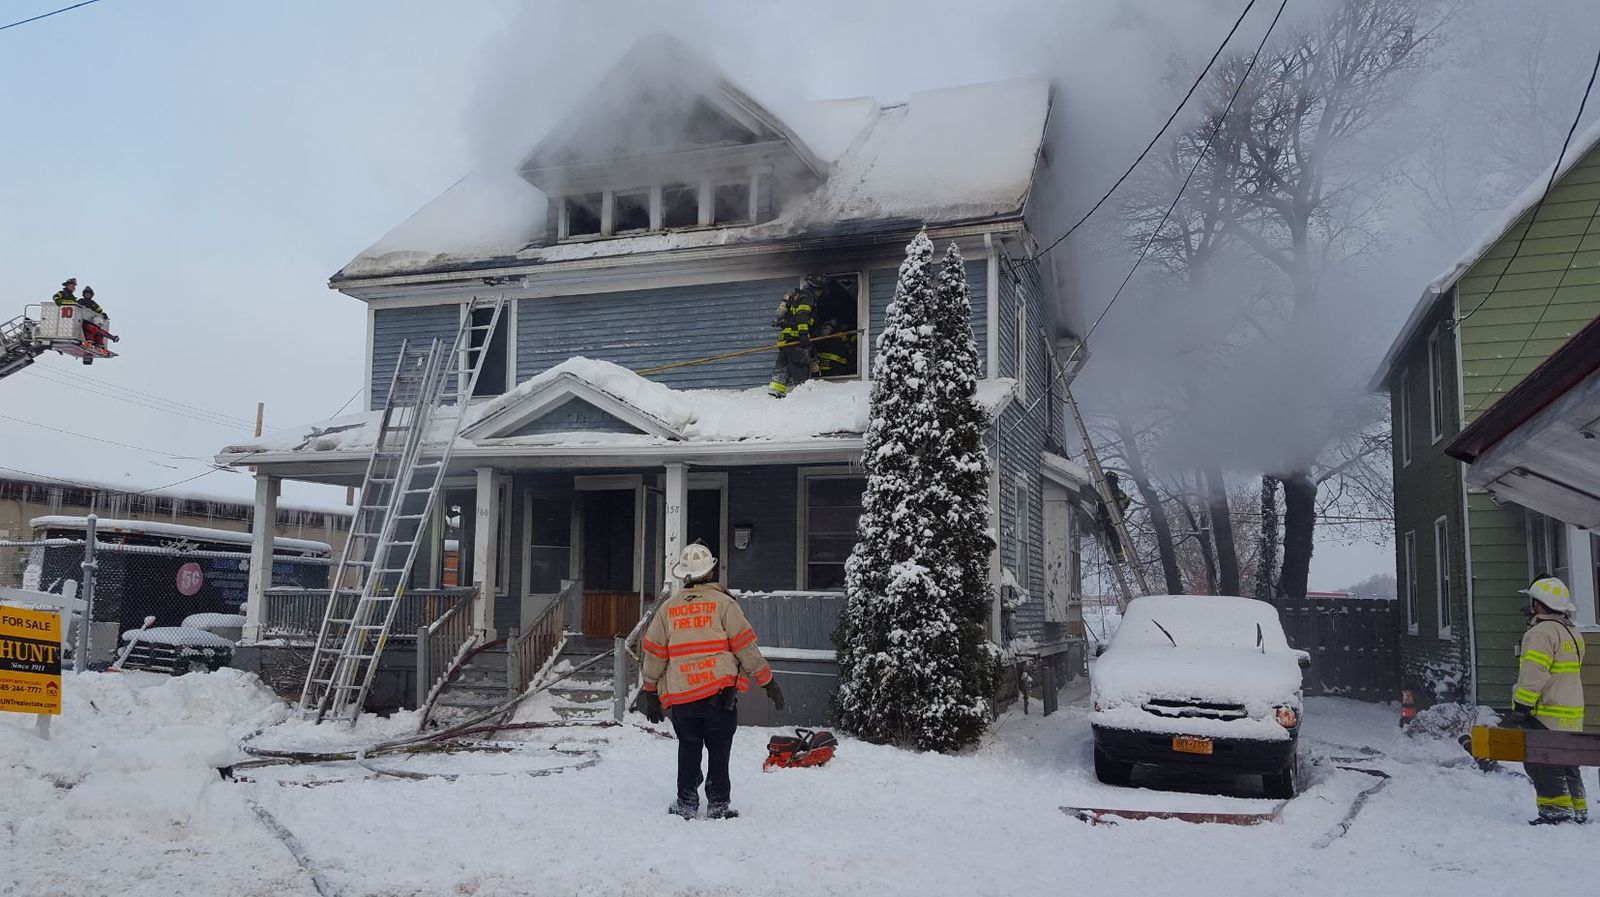 According to Rochester Fire Department Public Information Officer F.F. Hudson, the Rochester Fire Department was dispatched to a fire at 160 Palm Street at 7:37 a.m. Sunday. (Photo: Rochester Fire Department){ }